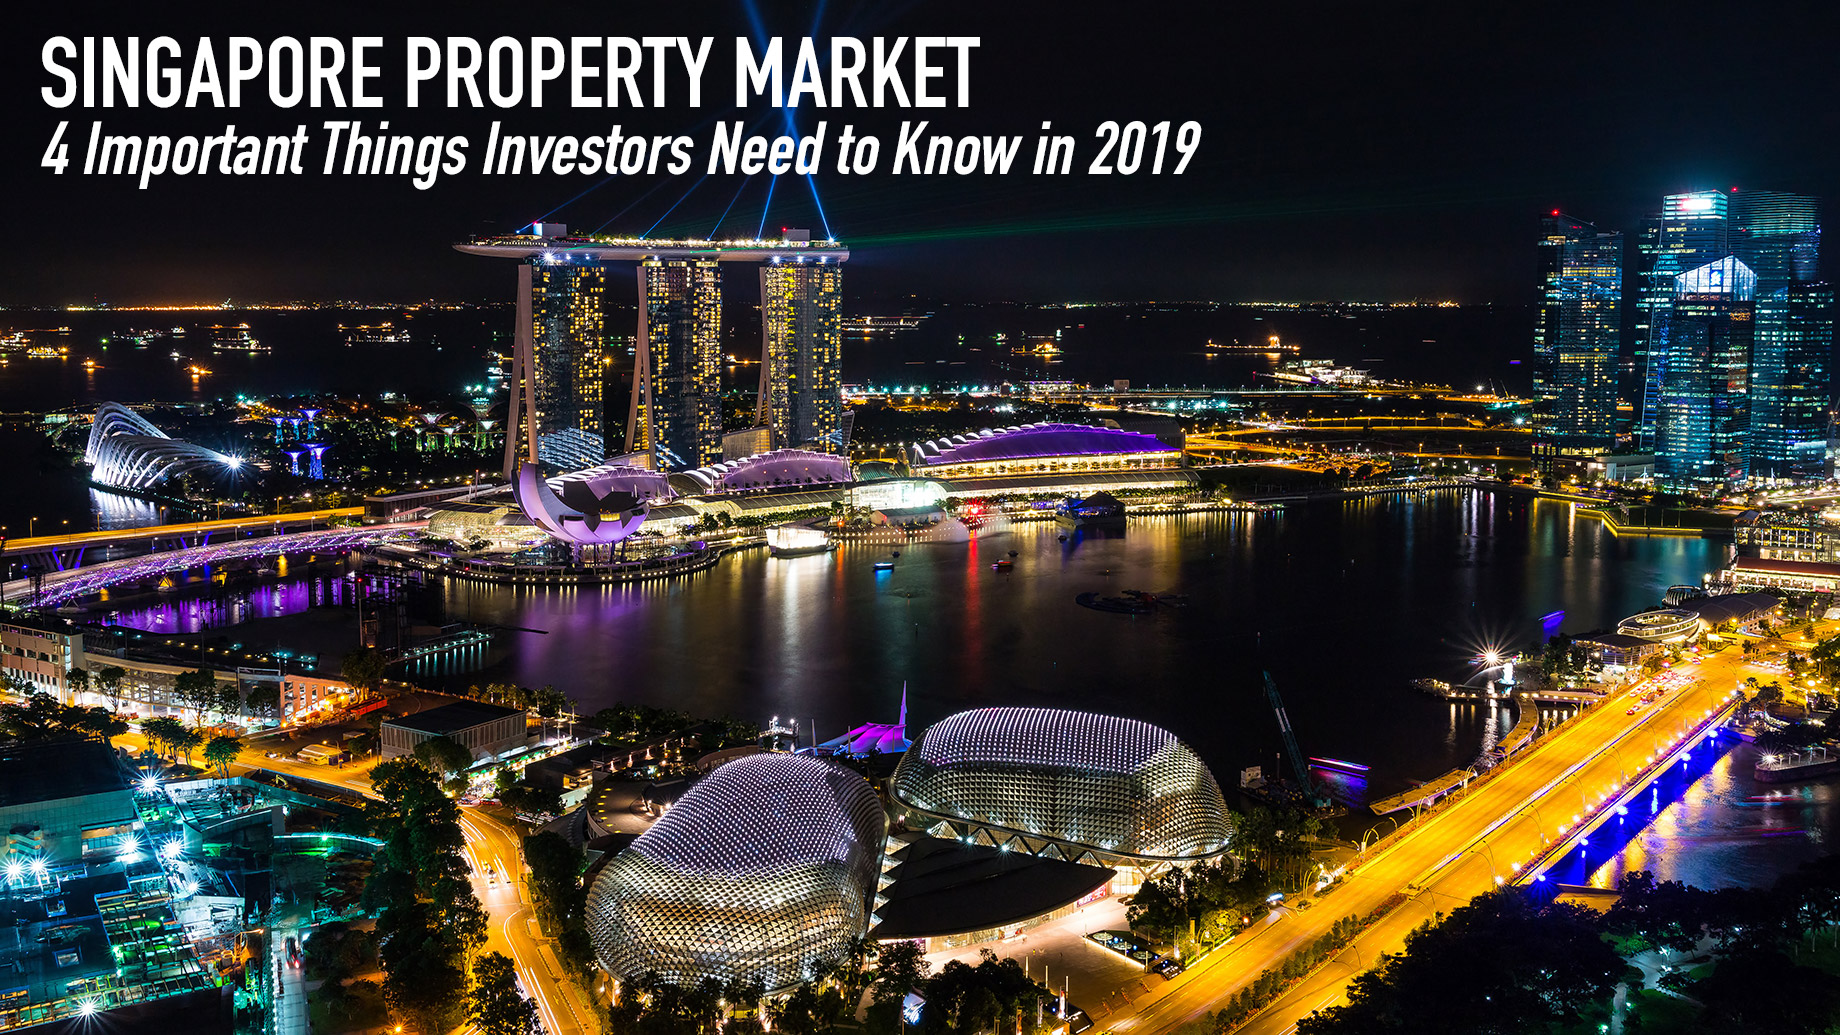 Singapore Property Market - 4 Important Things Investors Need to Know in 2019